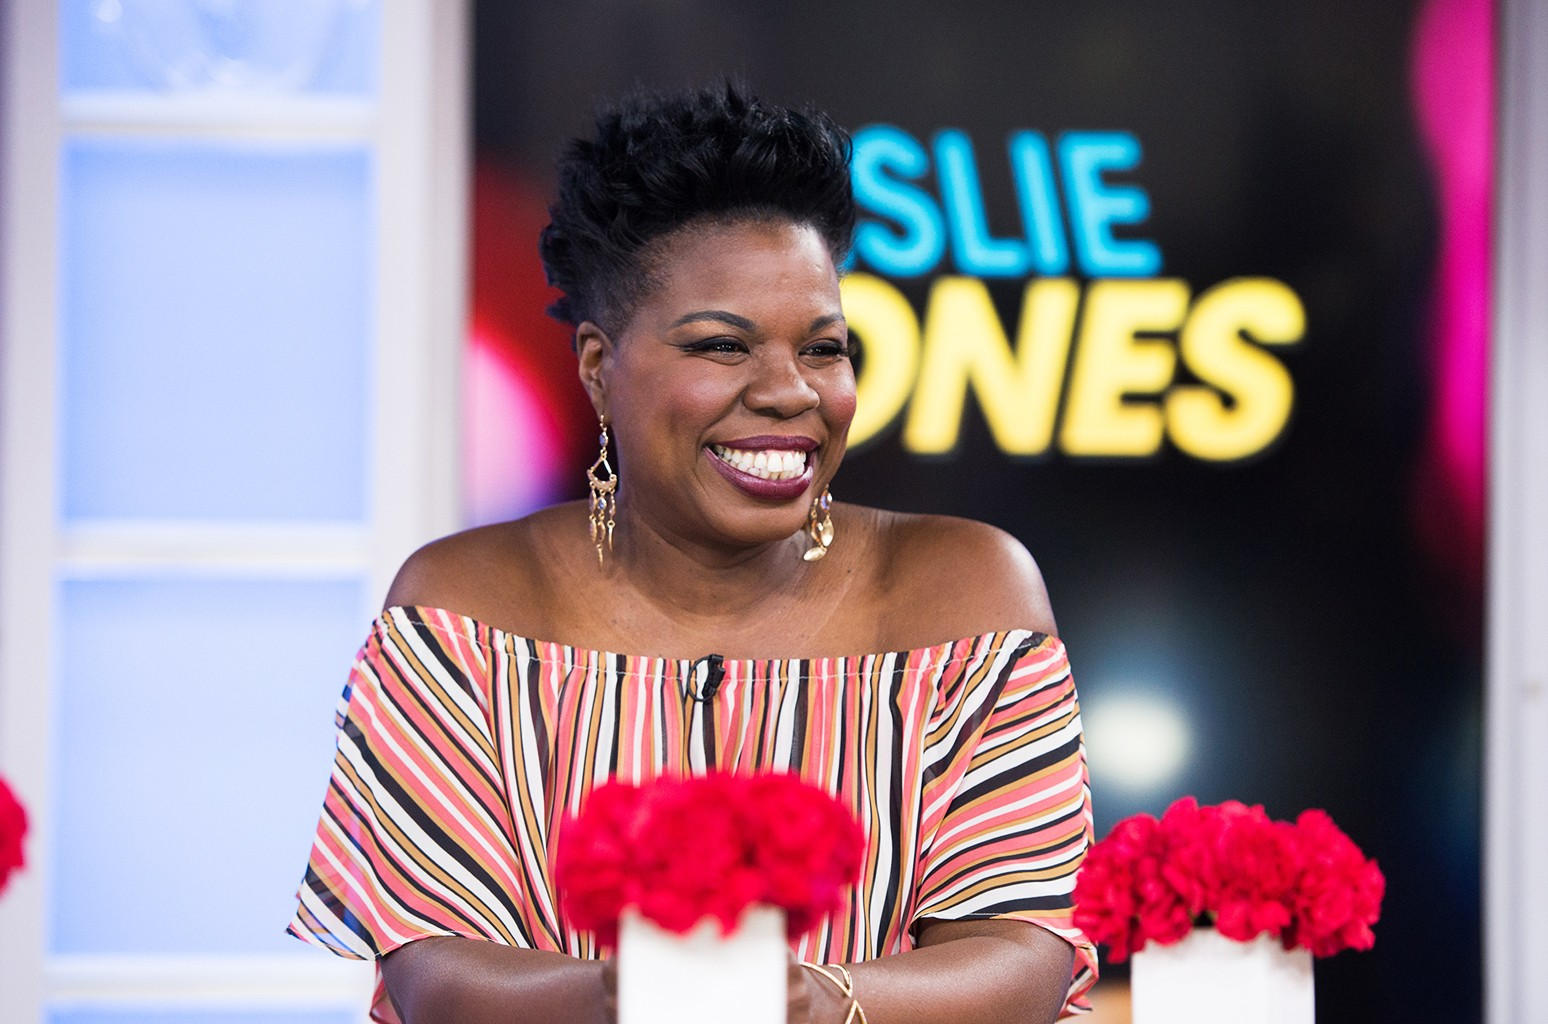 Leslie Jones photographed on June 12, 2017.